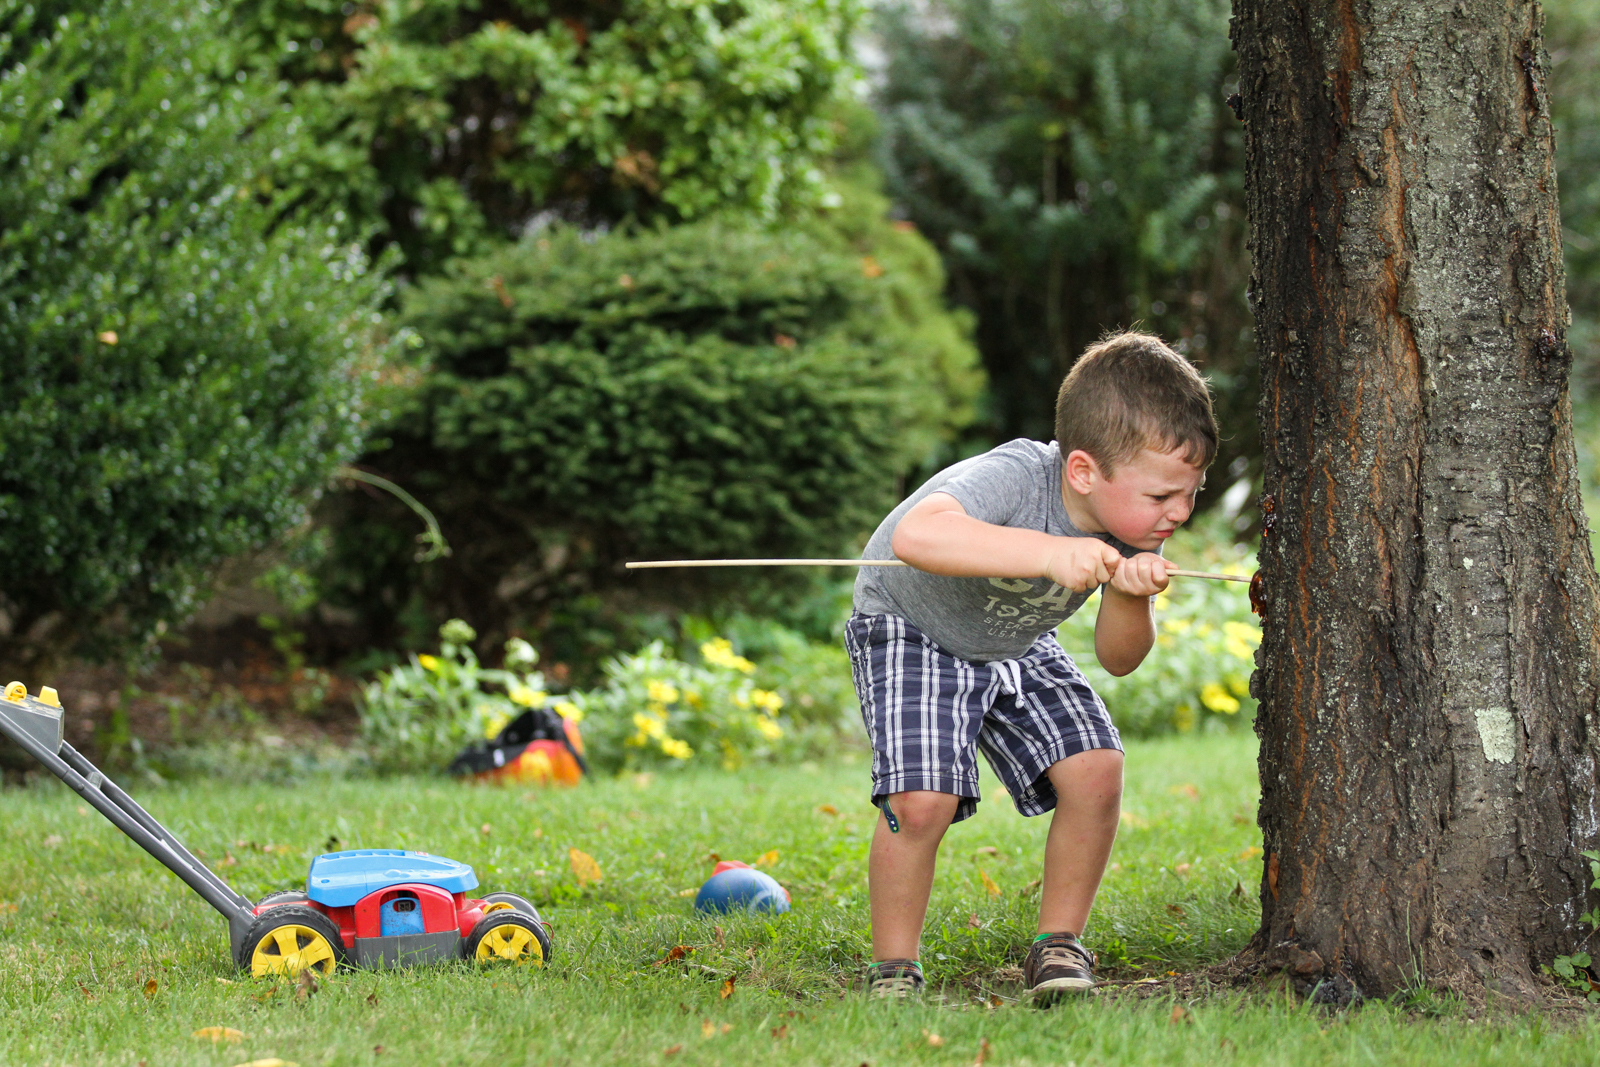 Boy pushes large stick into tree trunk